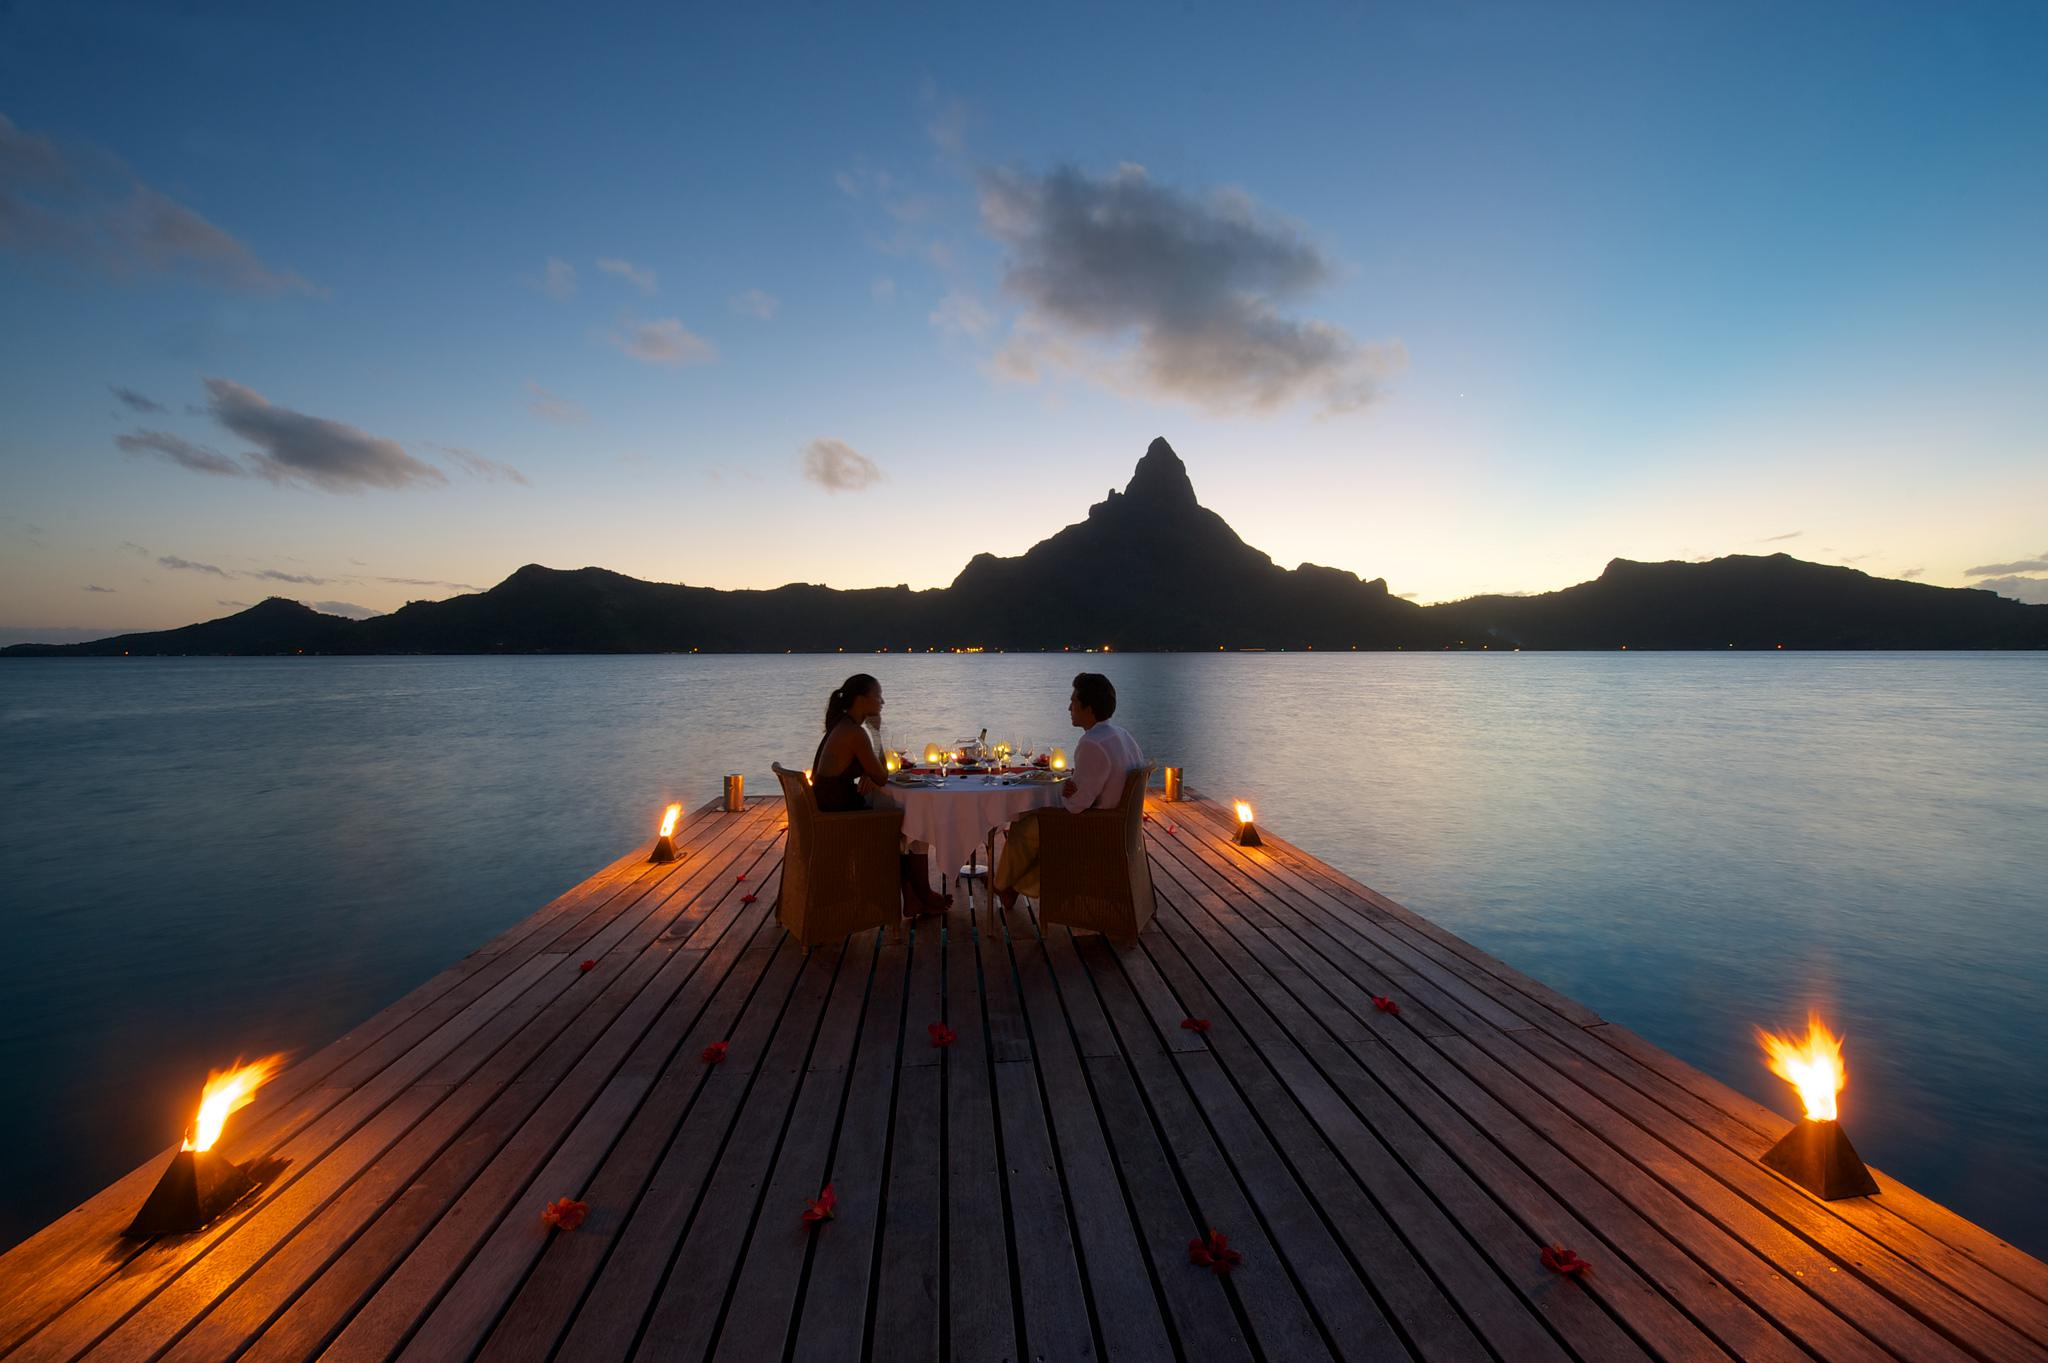 bora bora   167524   High Quality and Resolution Wallpapers on 2048x1363